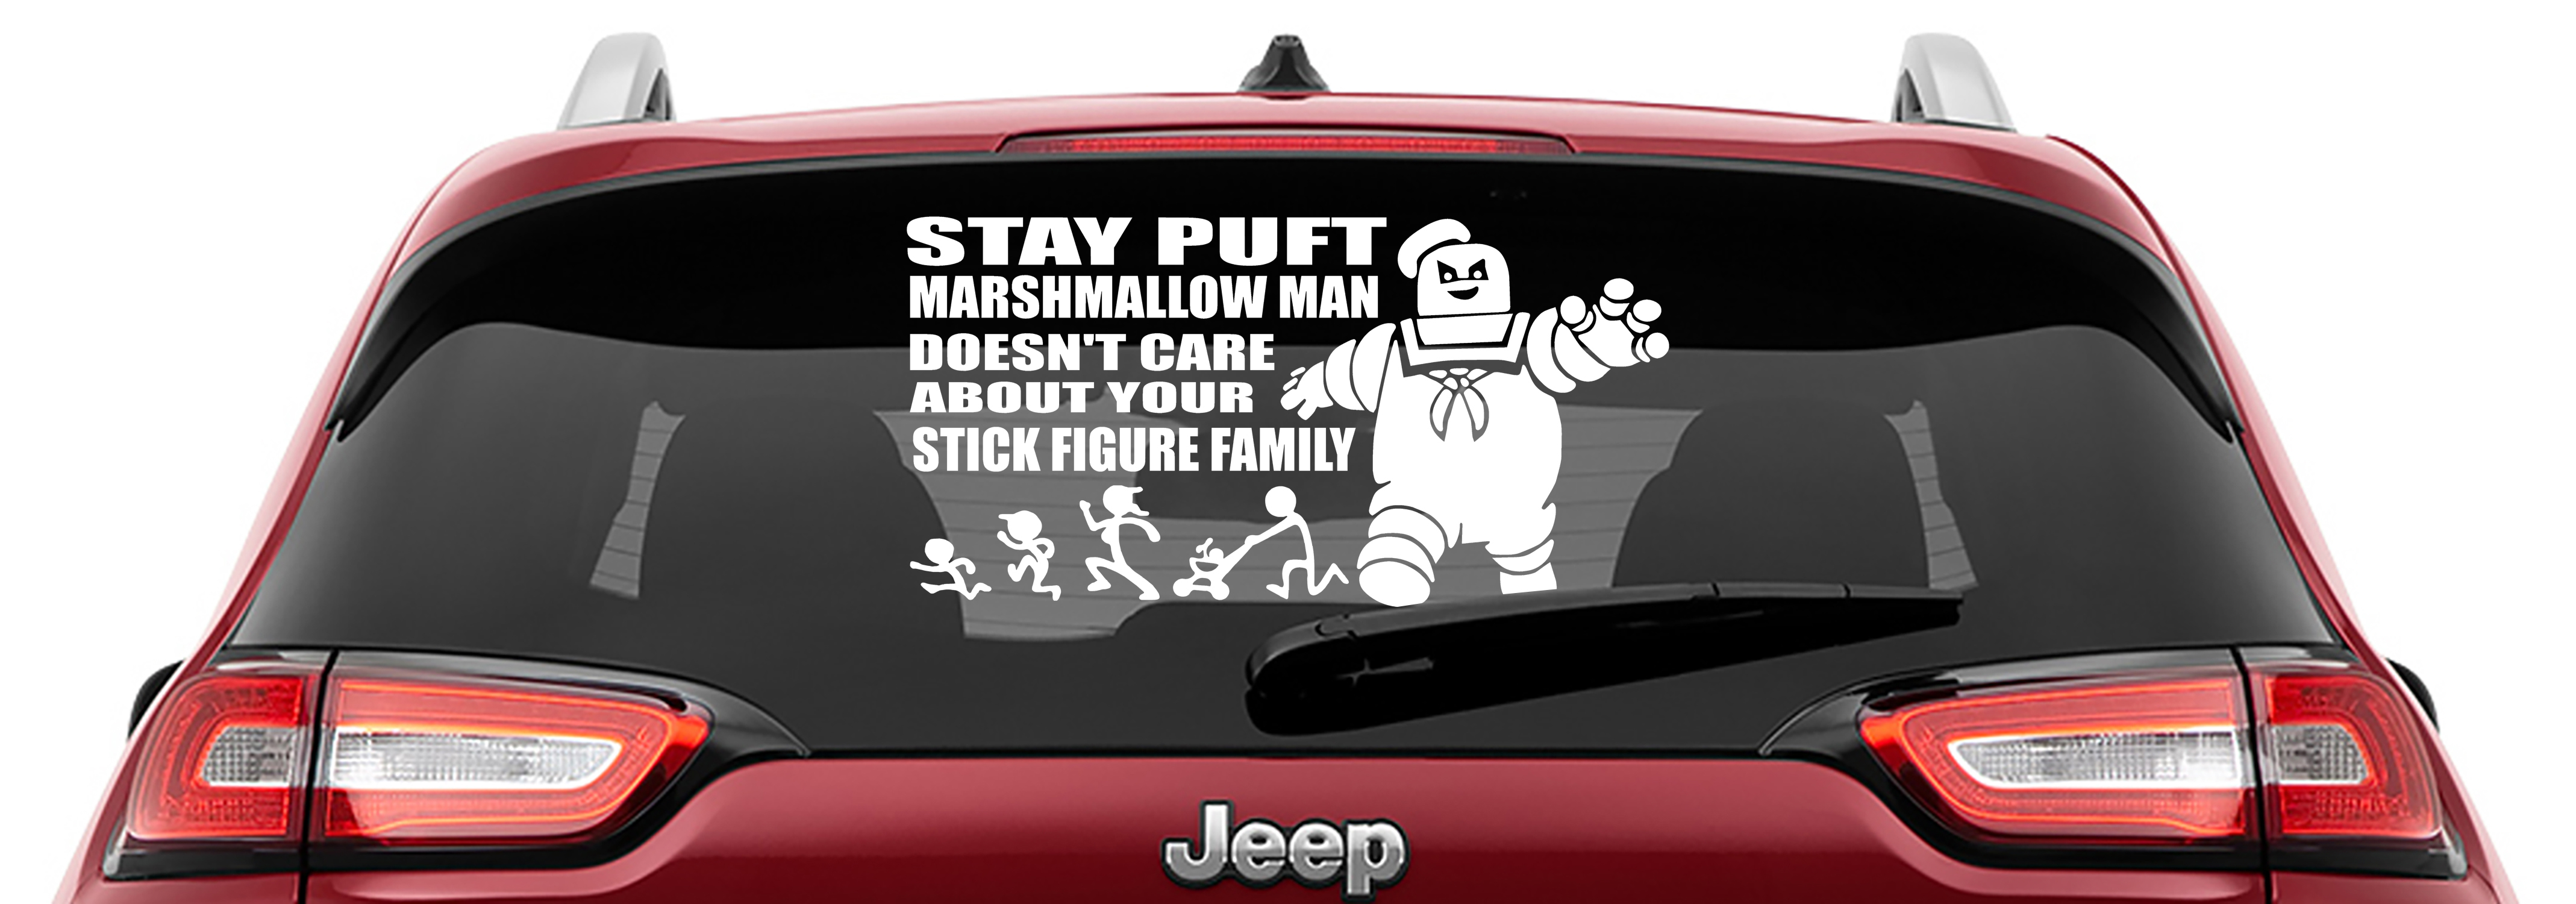 Ghostbusters Inspired Stay Puft Marshmallow Man Doesn't Care About Your Stick Figure Family Vinyl Decal